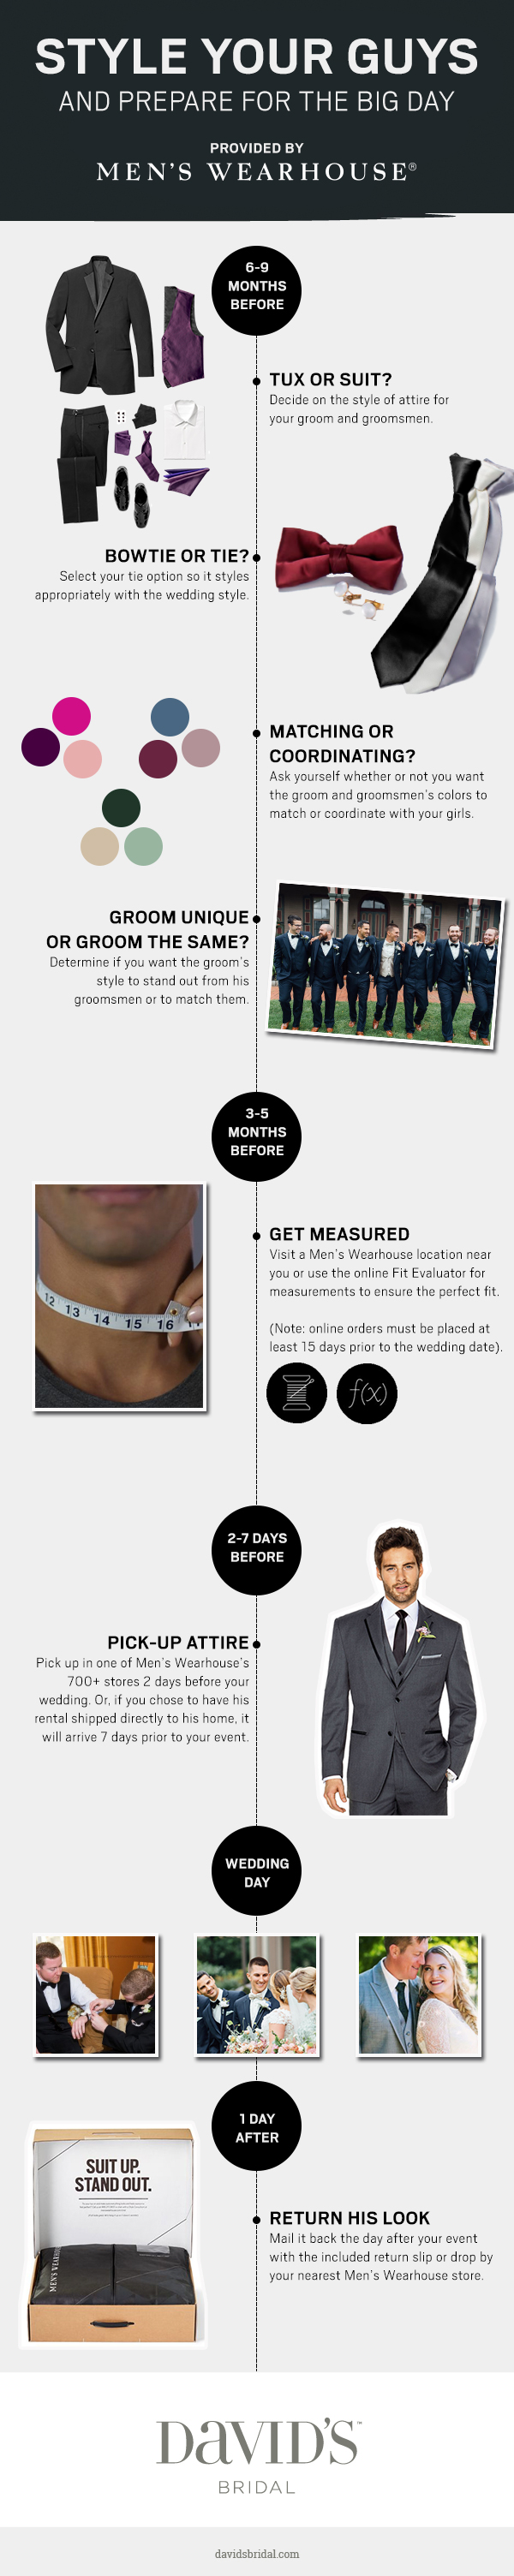 Style Your Guys info graphic